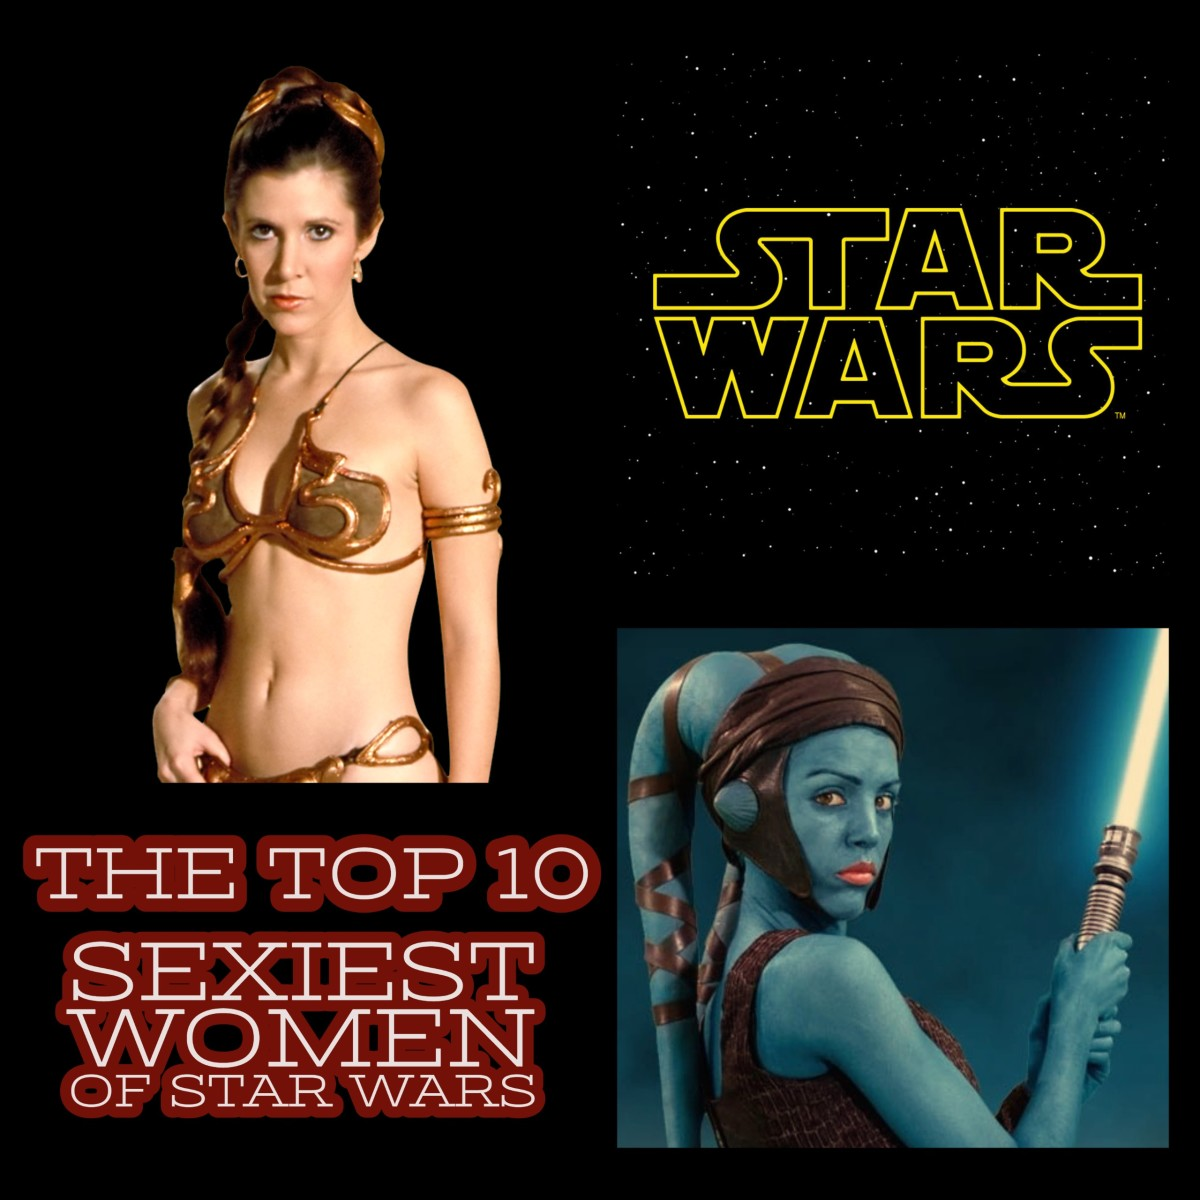 The Top 10 Sexiest Women of Star Wars